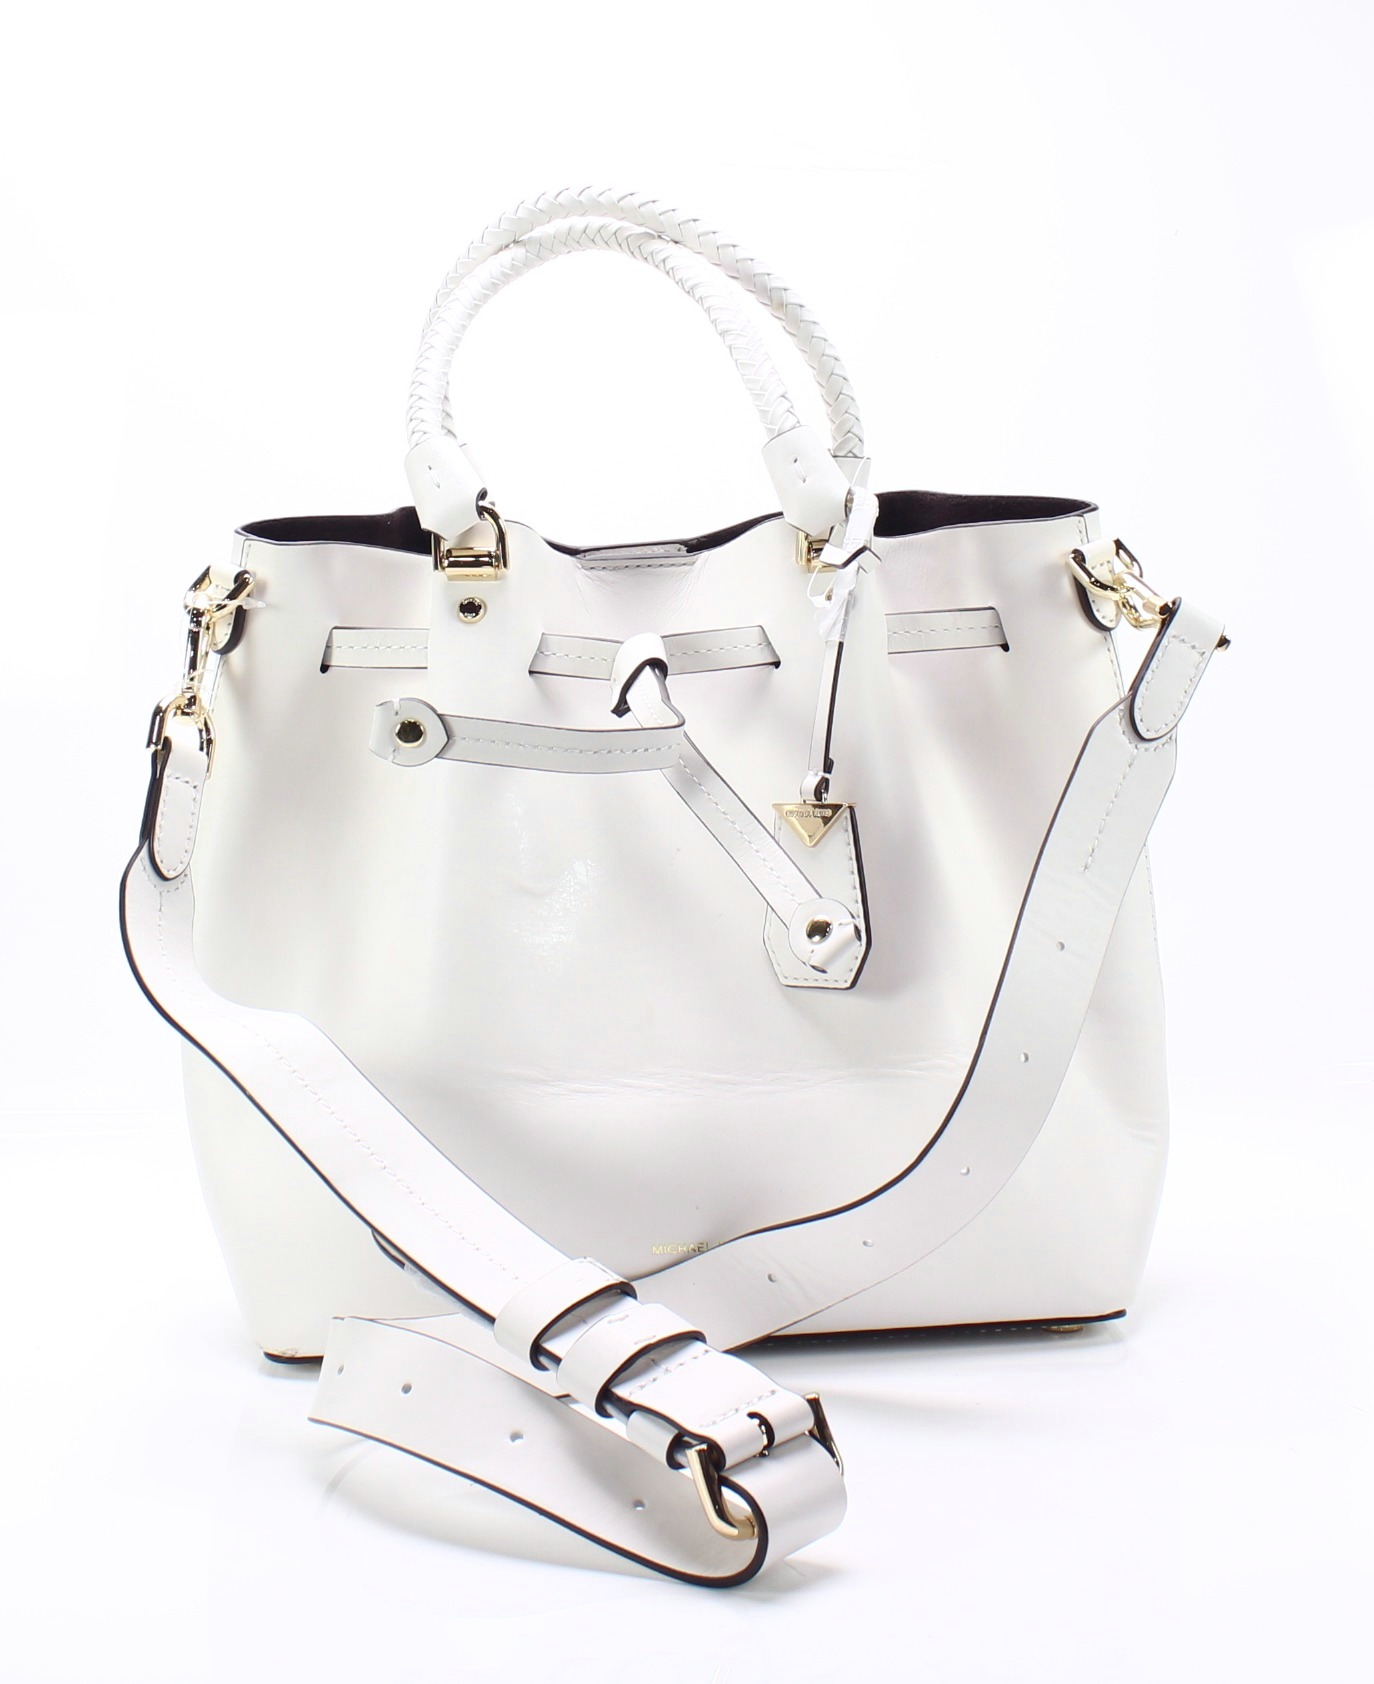 3db52c8c286c Michael Kors NEW Optic White Gold Blakely Leather Bucket Shoulder Bag  398-   008